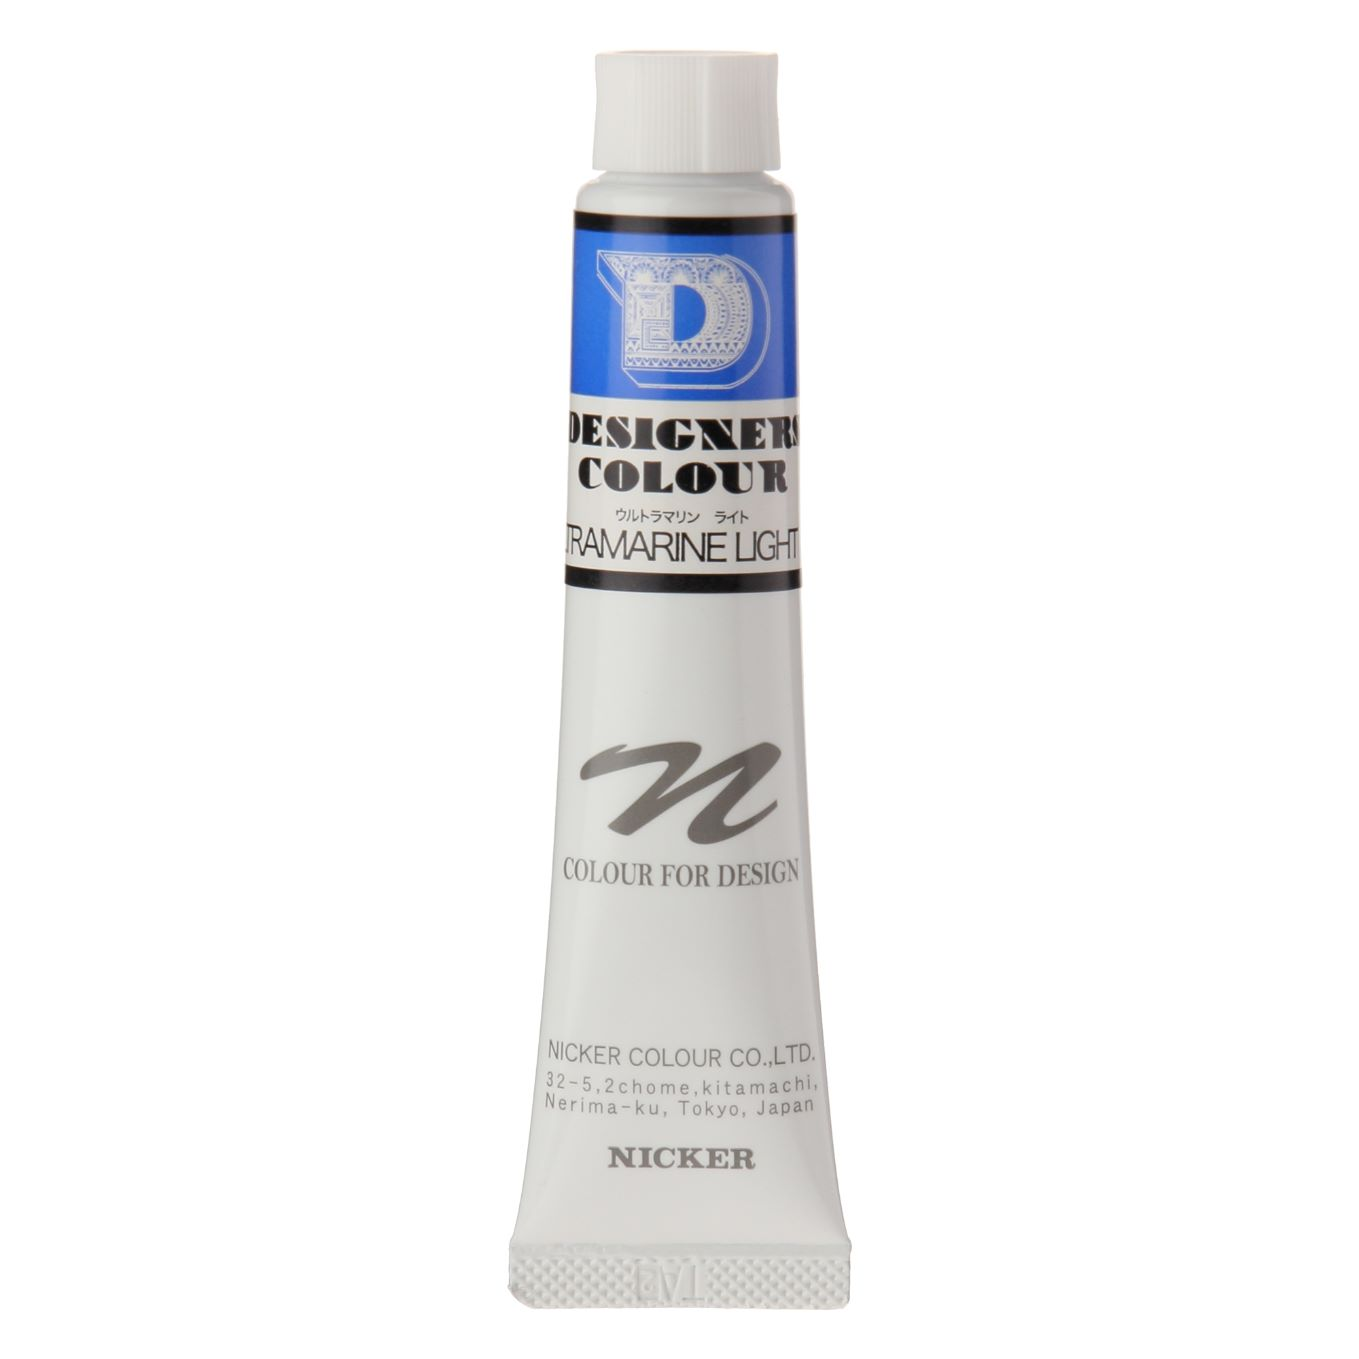 DESIGNERS COLOUR 20ml 536 ULTRAMARINE LIGHT